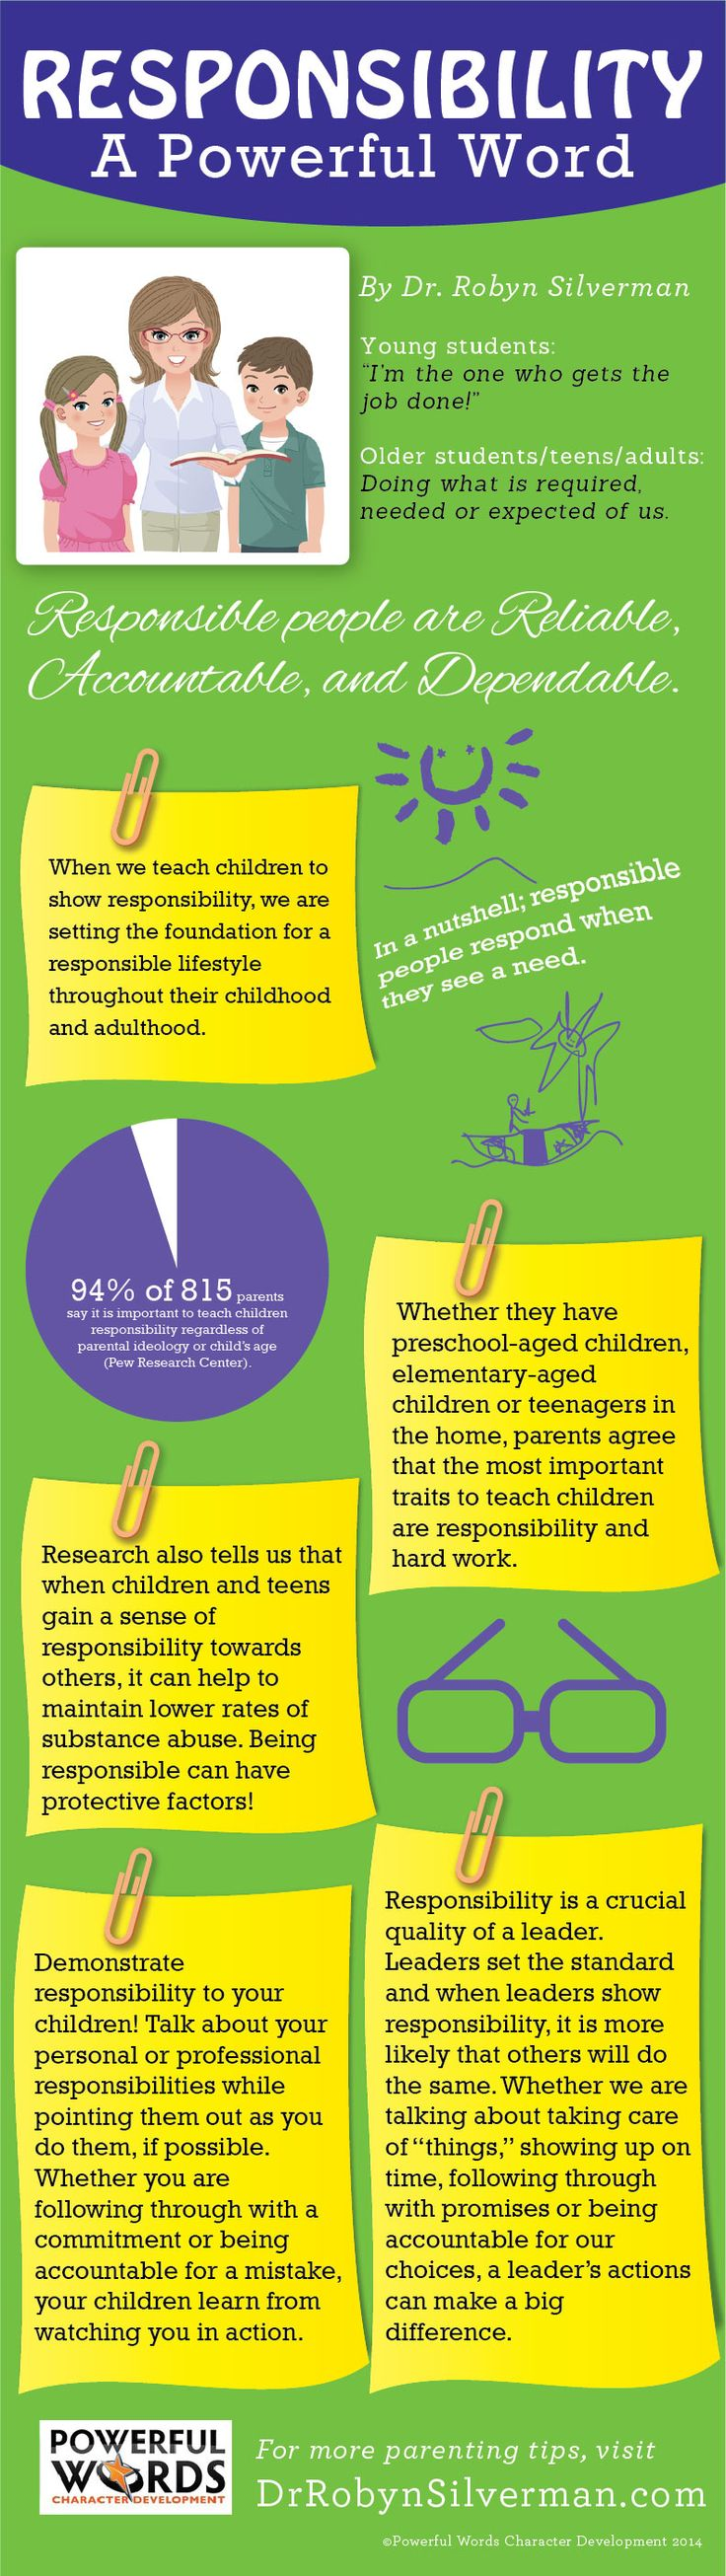 Teaching children about Responsibility